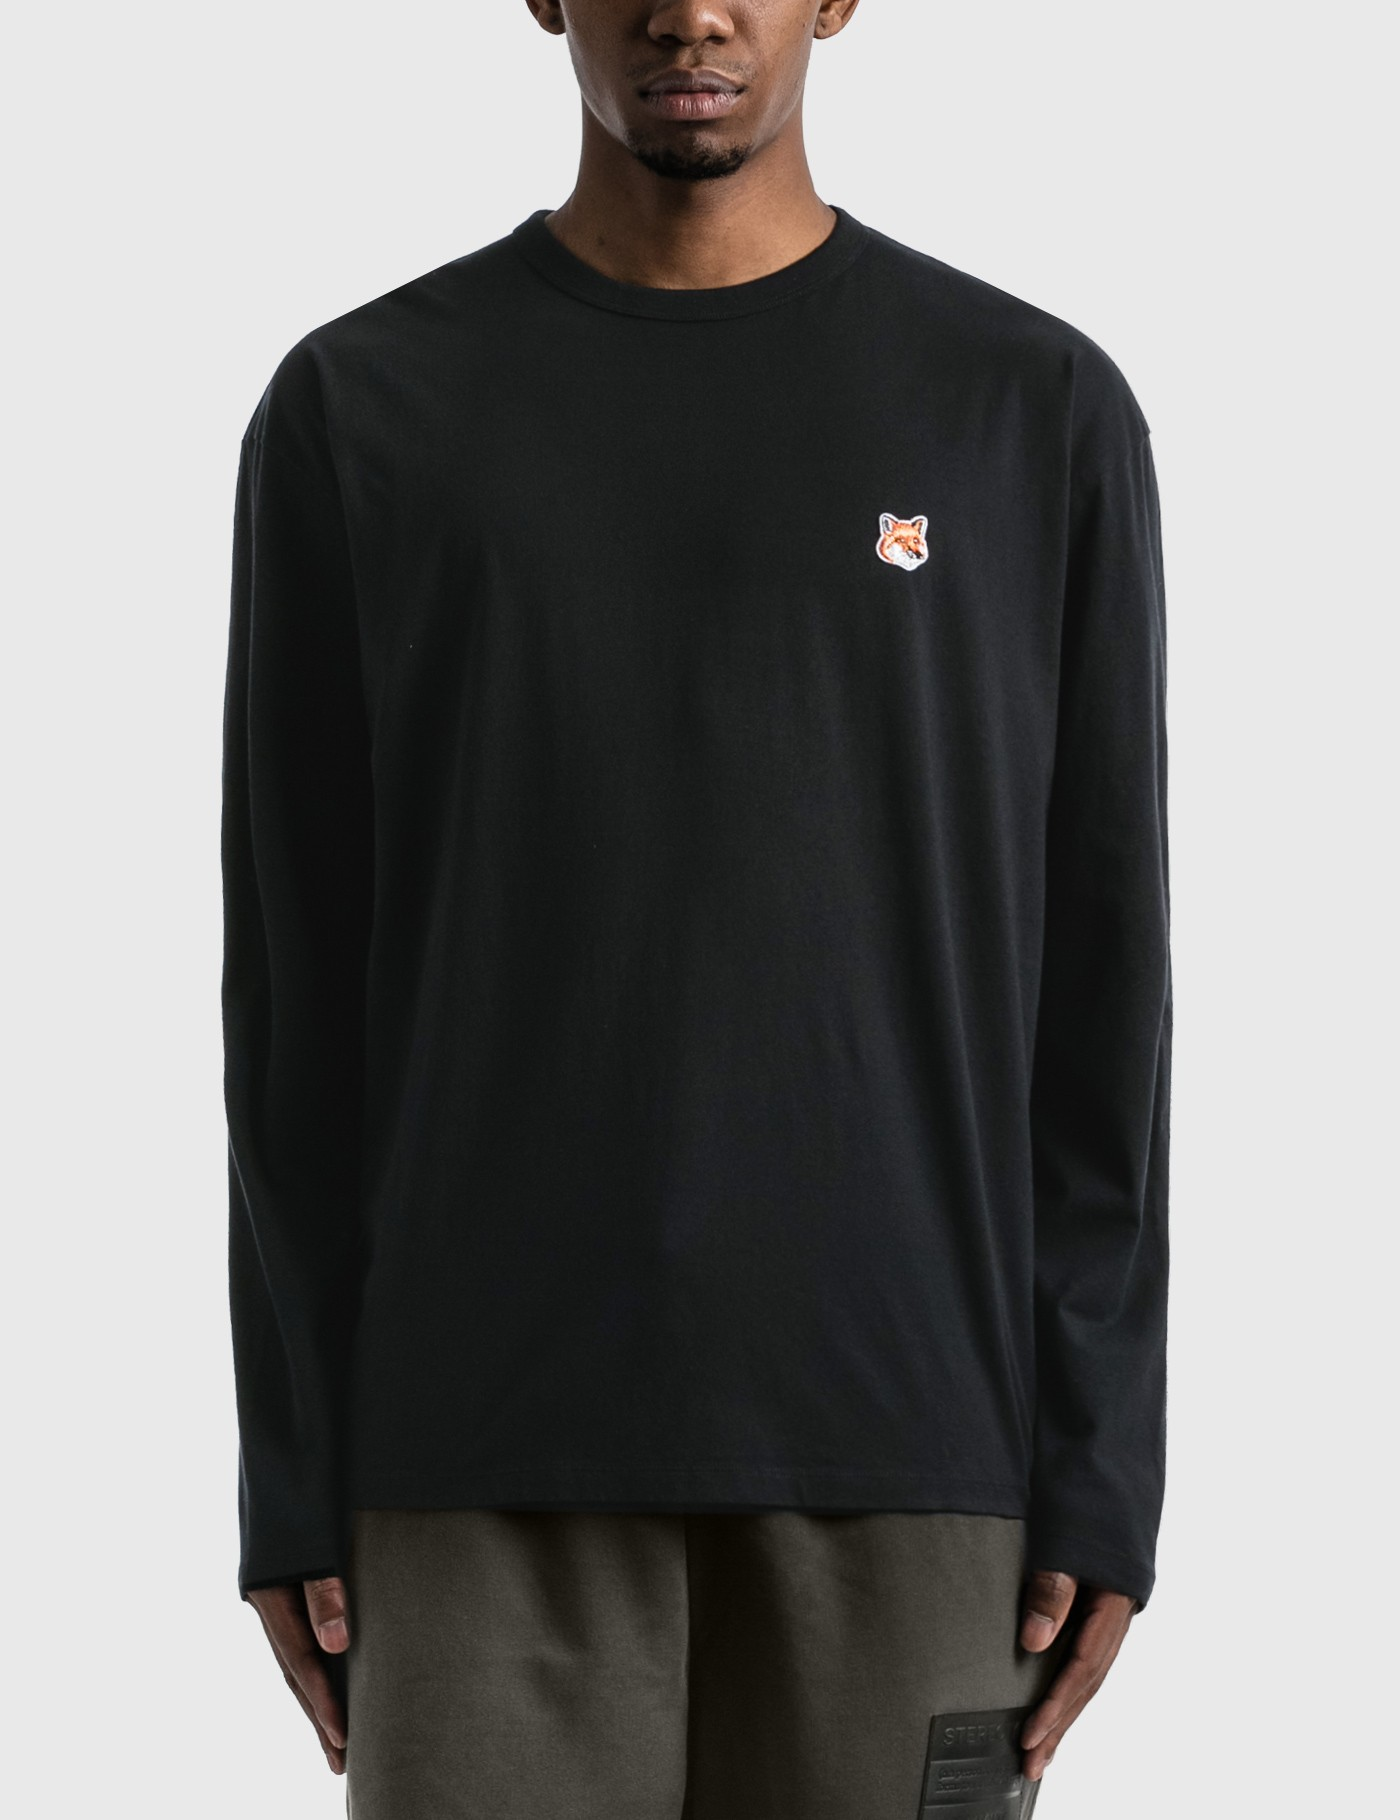 MAISON KITSUNE Fox Head Patch Long Sleeve T-shirt